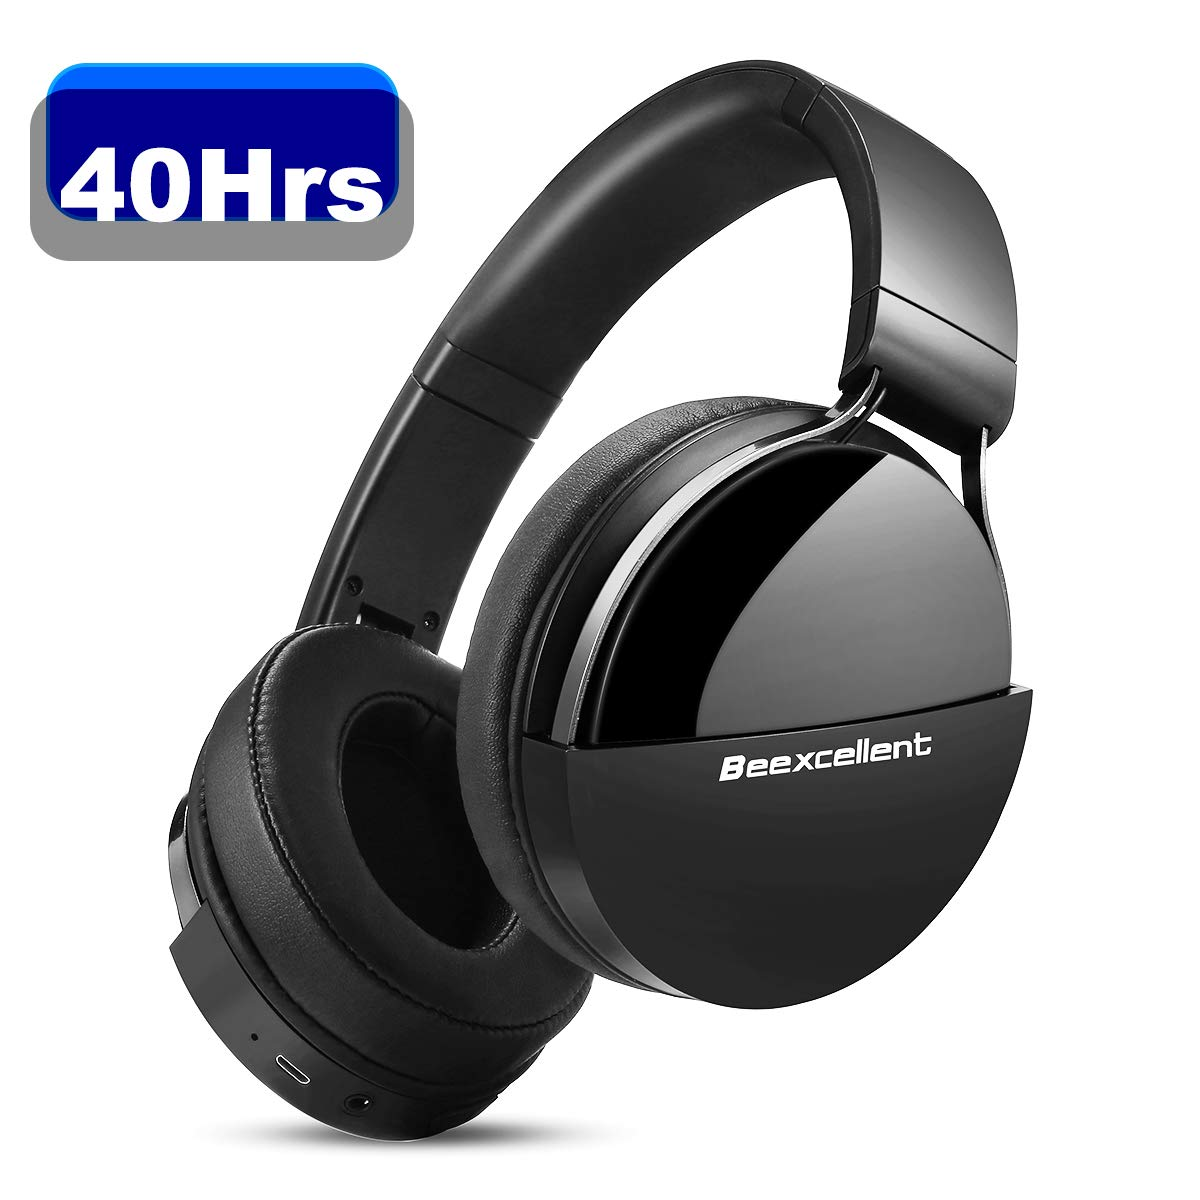 Beexcellent Wireless Bluetooth Headphones, 40 Hours HiFi Stereo Bluetooth 5.0 CVC 6.0 Over Ear Headphones with Build-in Mic, for iPhone Samsung Huawei iPad Cellphone